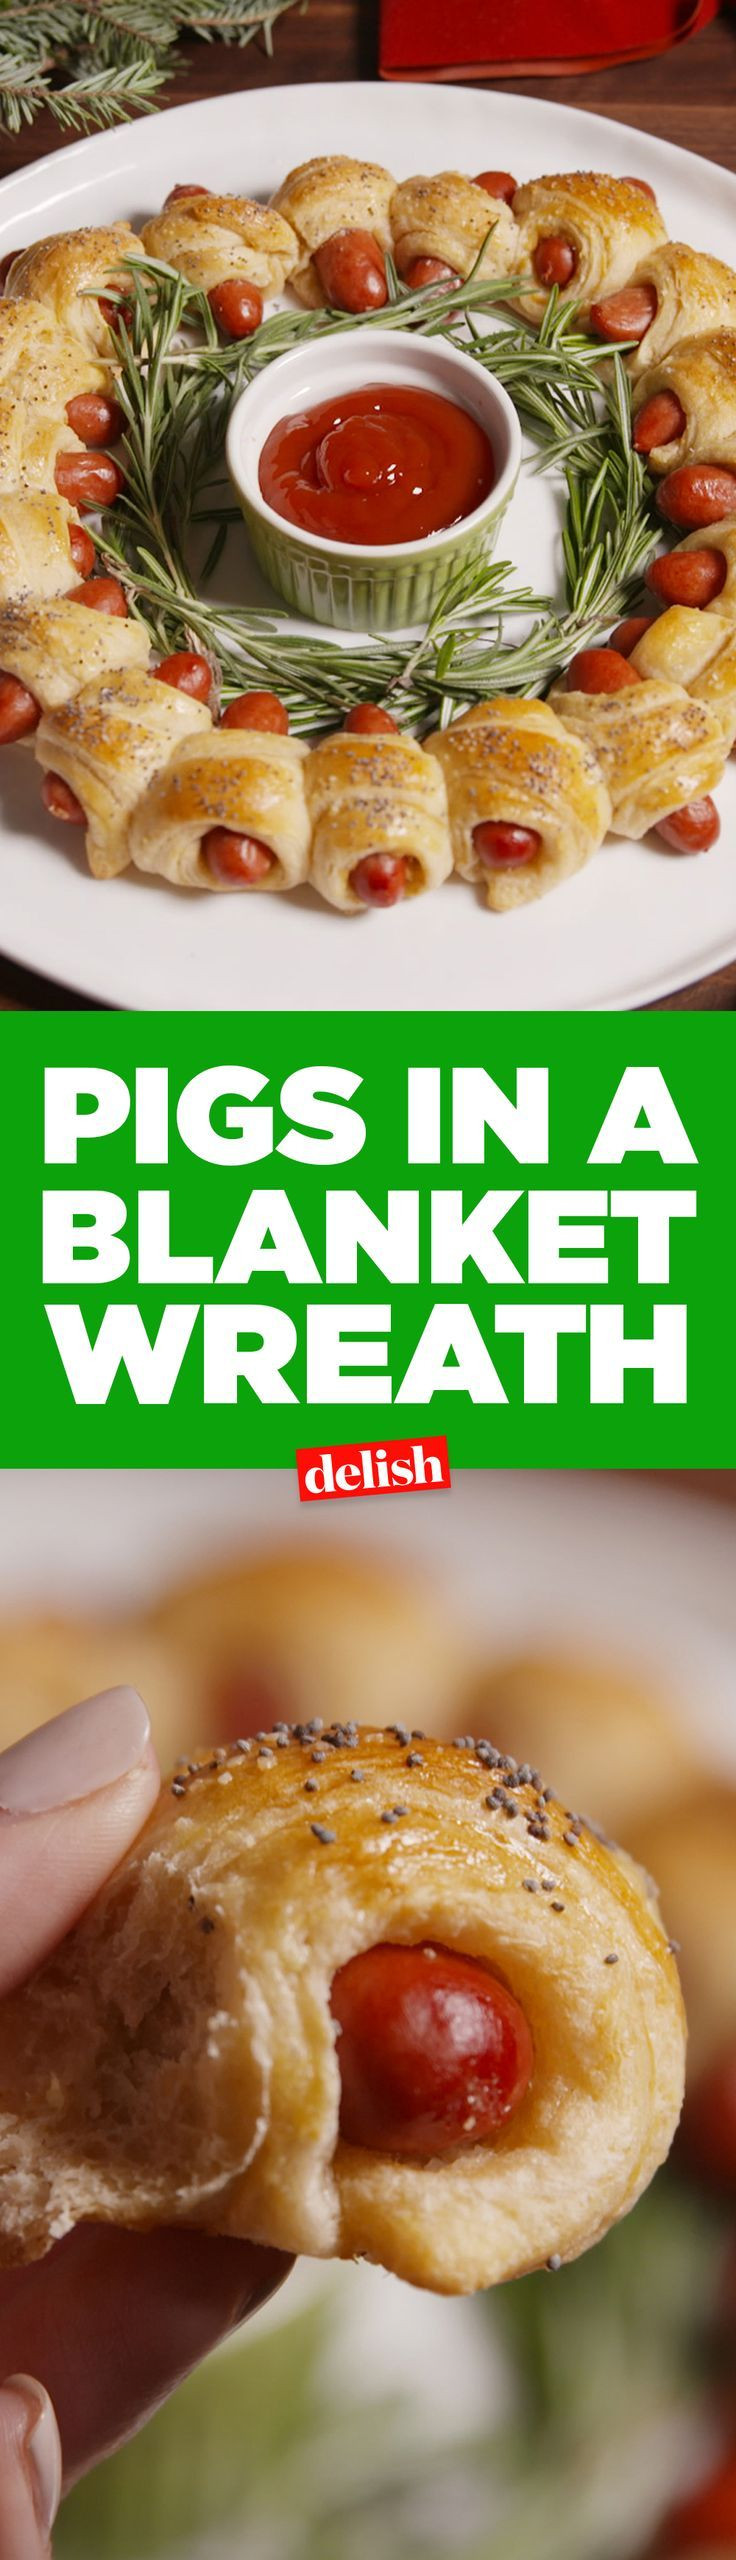 Appetizers For Christmas Eve Party  Pigs In A Blanket Wreath Recipe